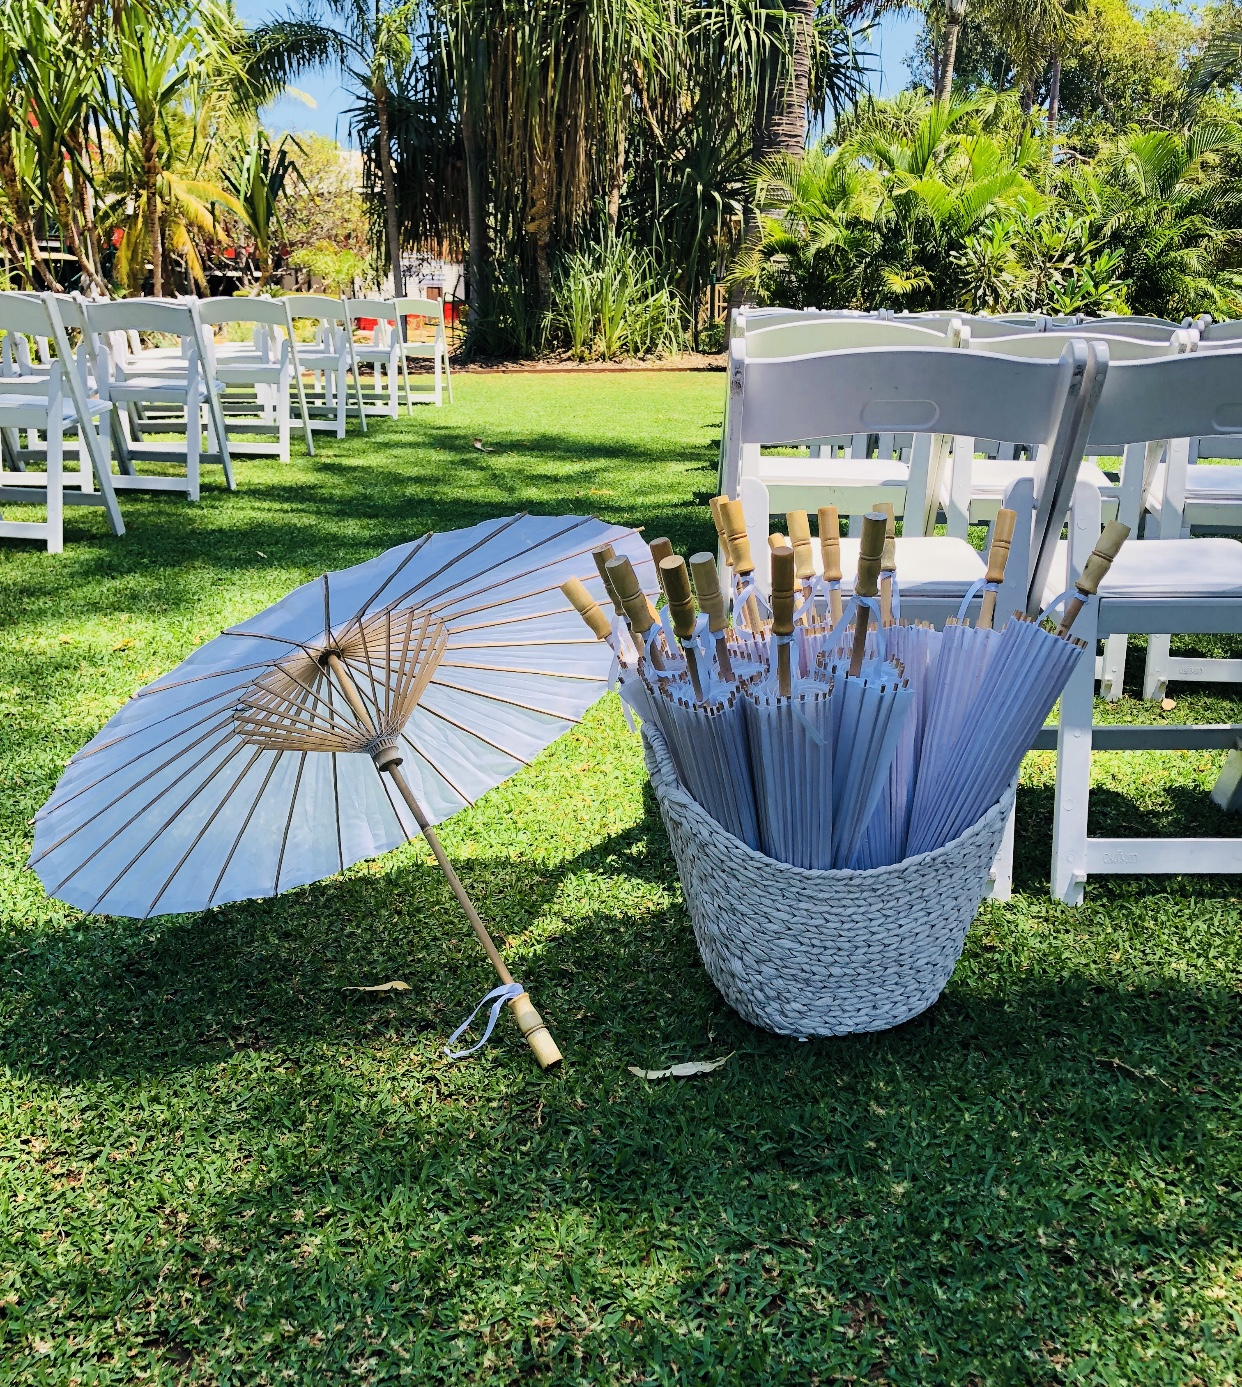 Parasols: $5 each - Comes with a white cane basket